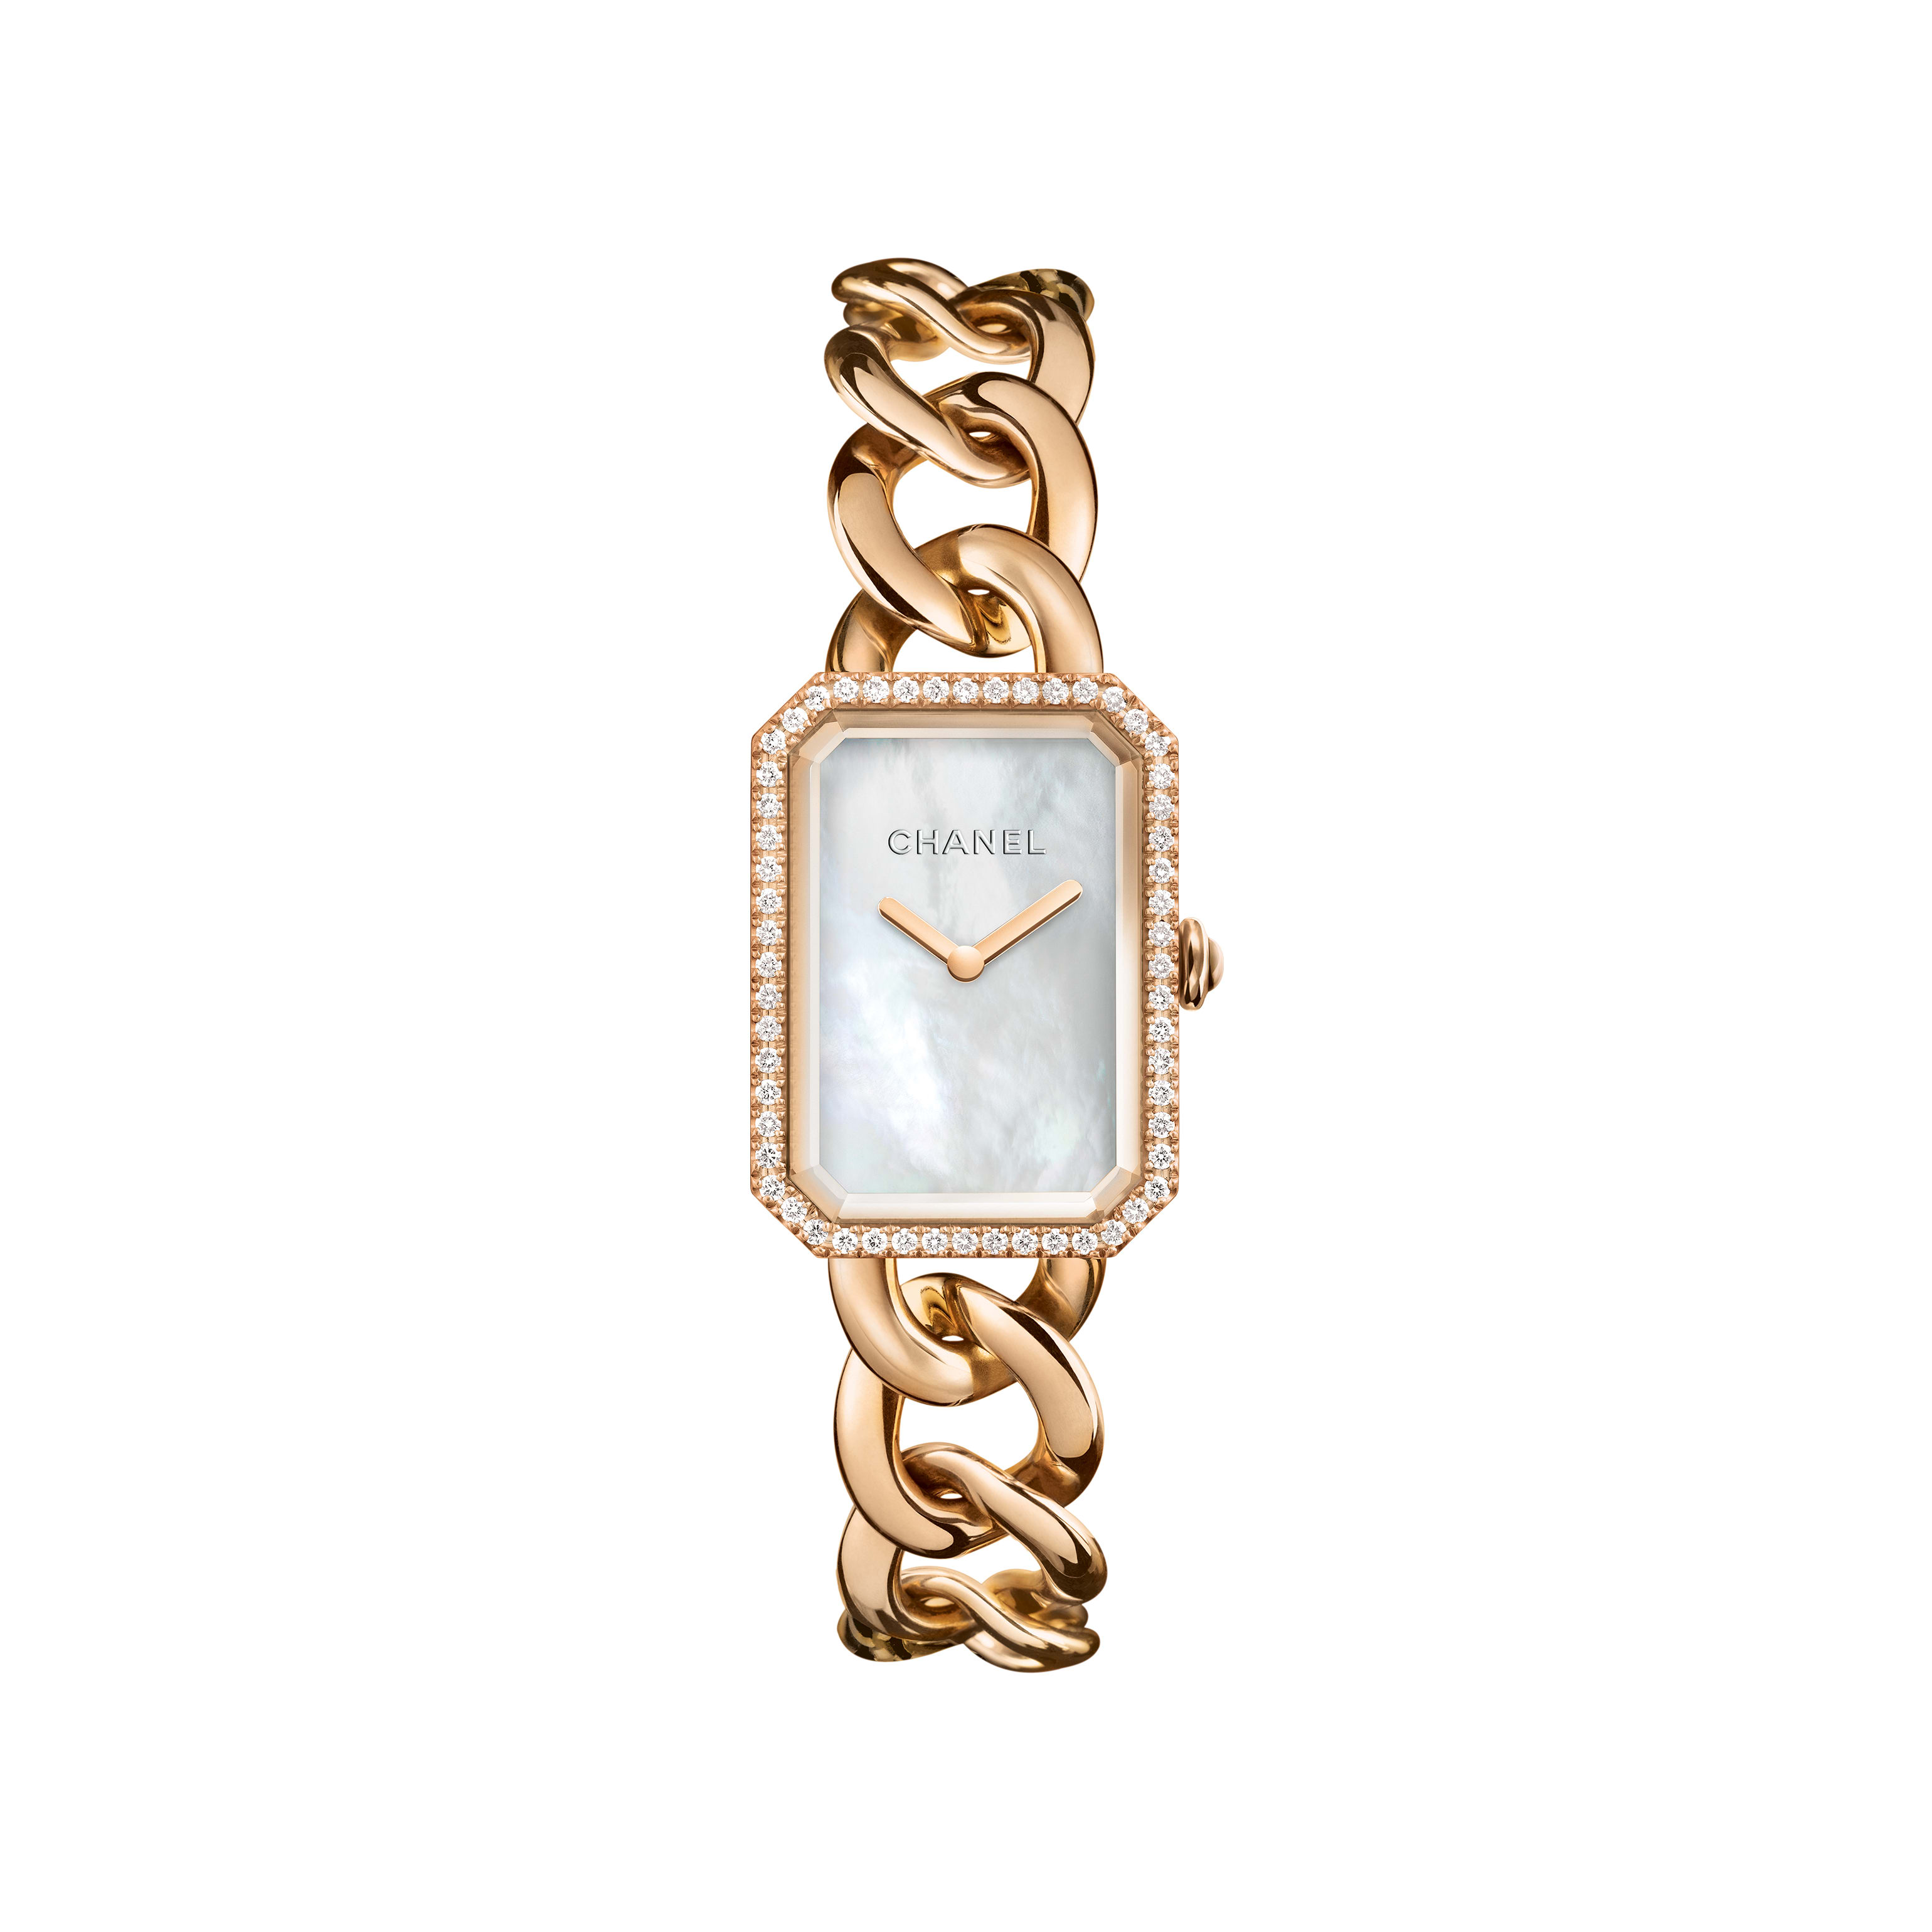 Première Chaîne - Large version, BEIGE GOLD and diamonds, white mother-of-pearl dial - CHANEL - Default view - see standard sized version